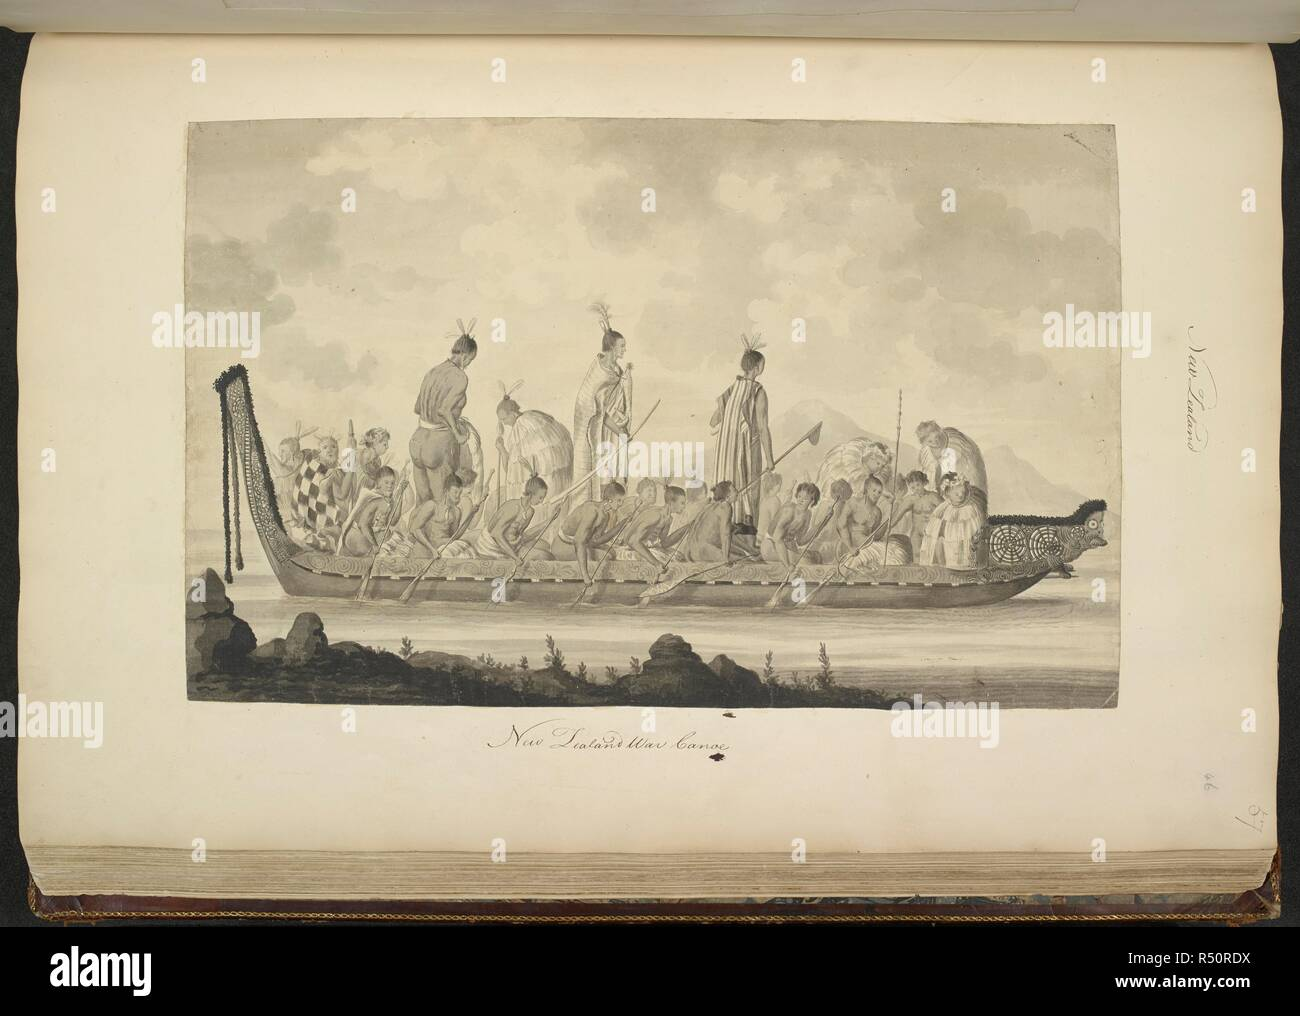 (Whole drawing) A New Zealand war canoe, with elaborate carving. Circa April 1770. A Collection of Drawings made in the Countries visited by Captain Cook in his First Voyage, 1768-1771. 1770.    . Source: Add. 23920, f.46. Language: English. Author: PARKINSON, SYDNEY. - Stock Image